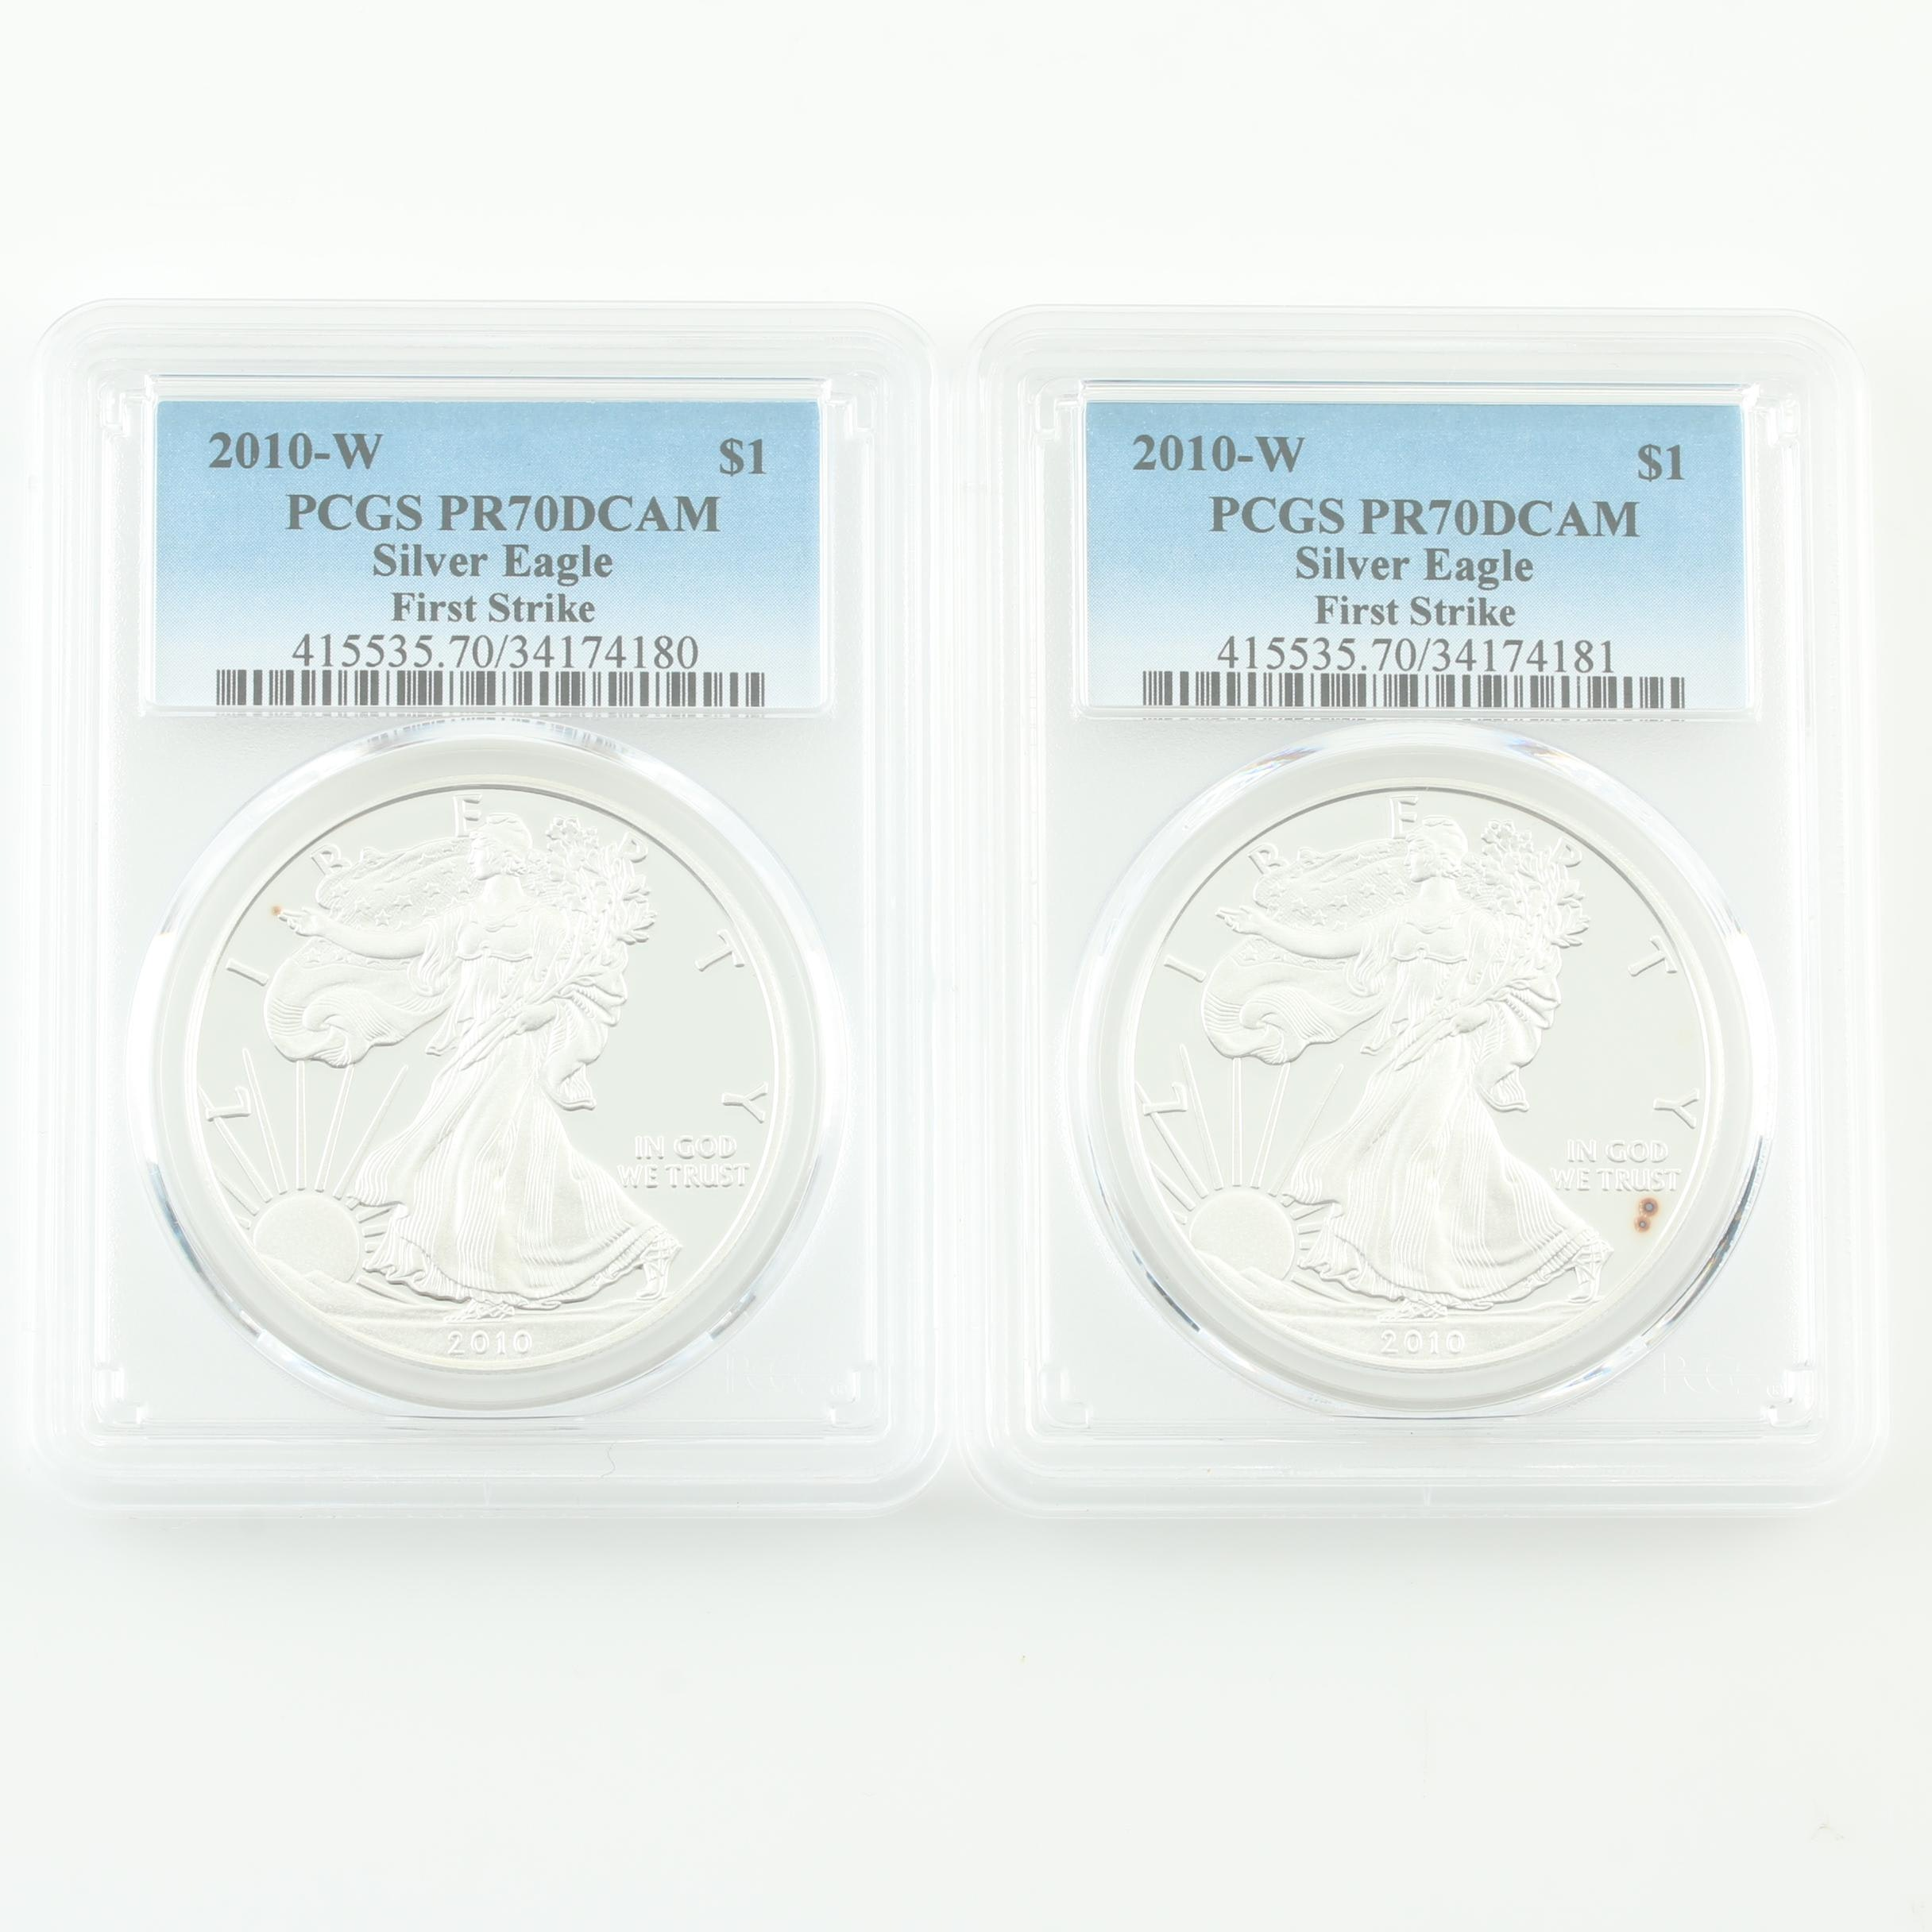 Two PCGS Graded PR70DCAM 2010-W Silver Eagle First Strike Bullion Coins